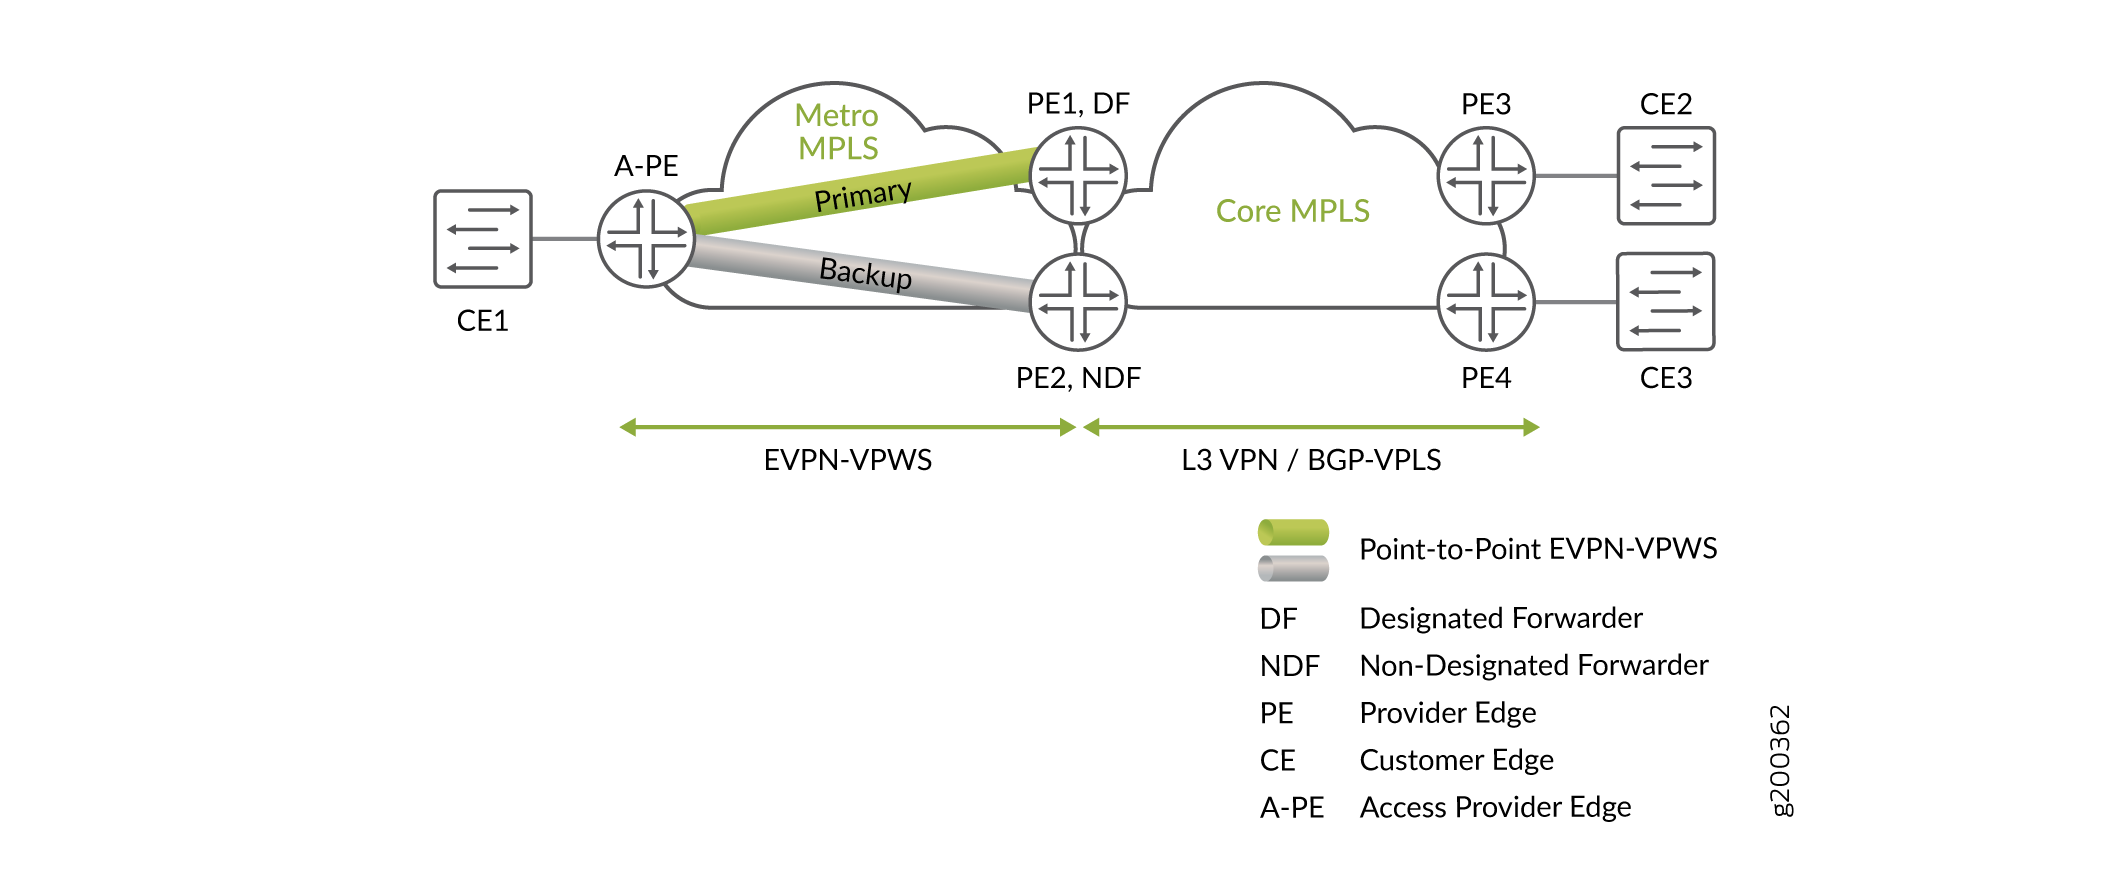 EVPN-VPWS Active/standby with Pseudowire Subscriber Interface